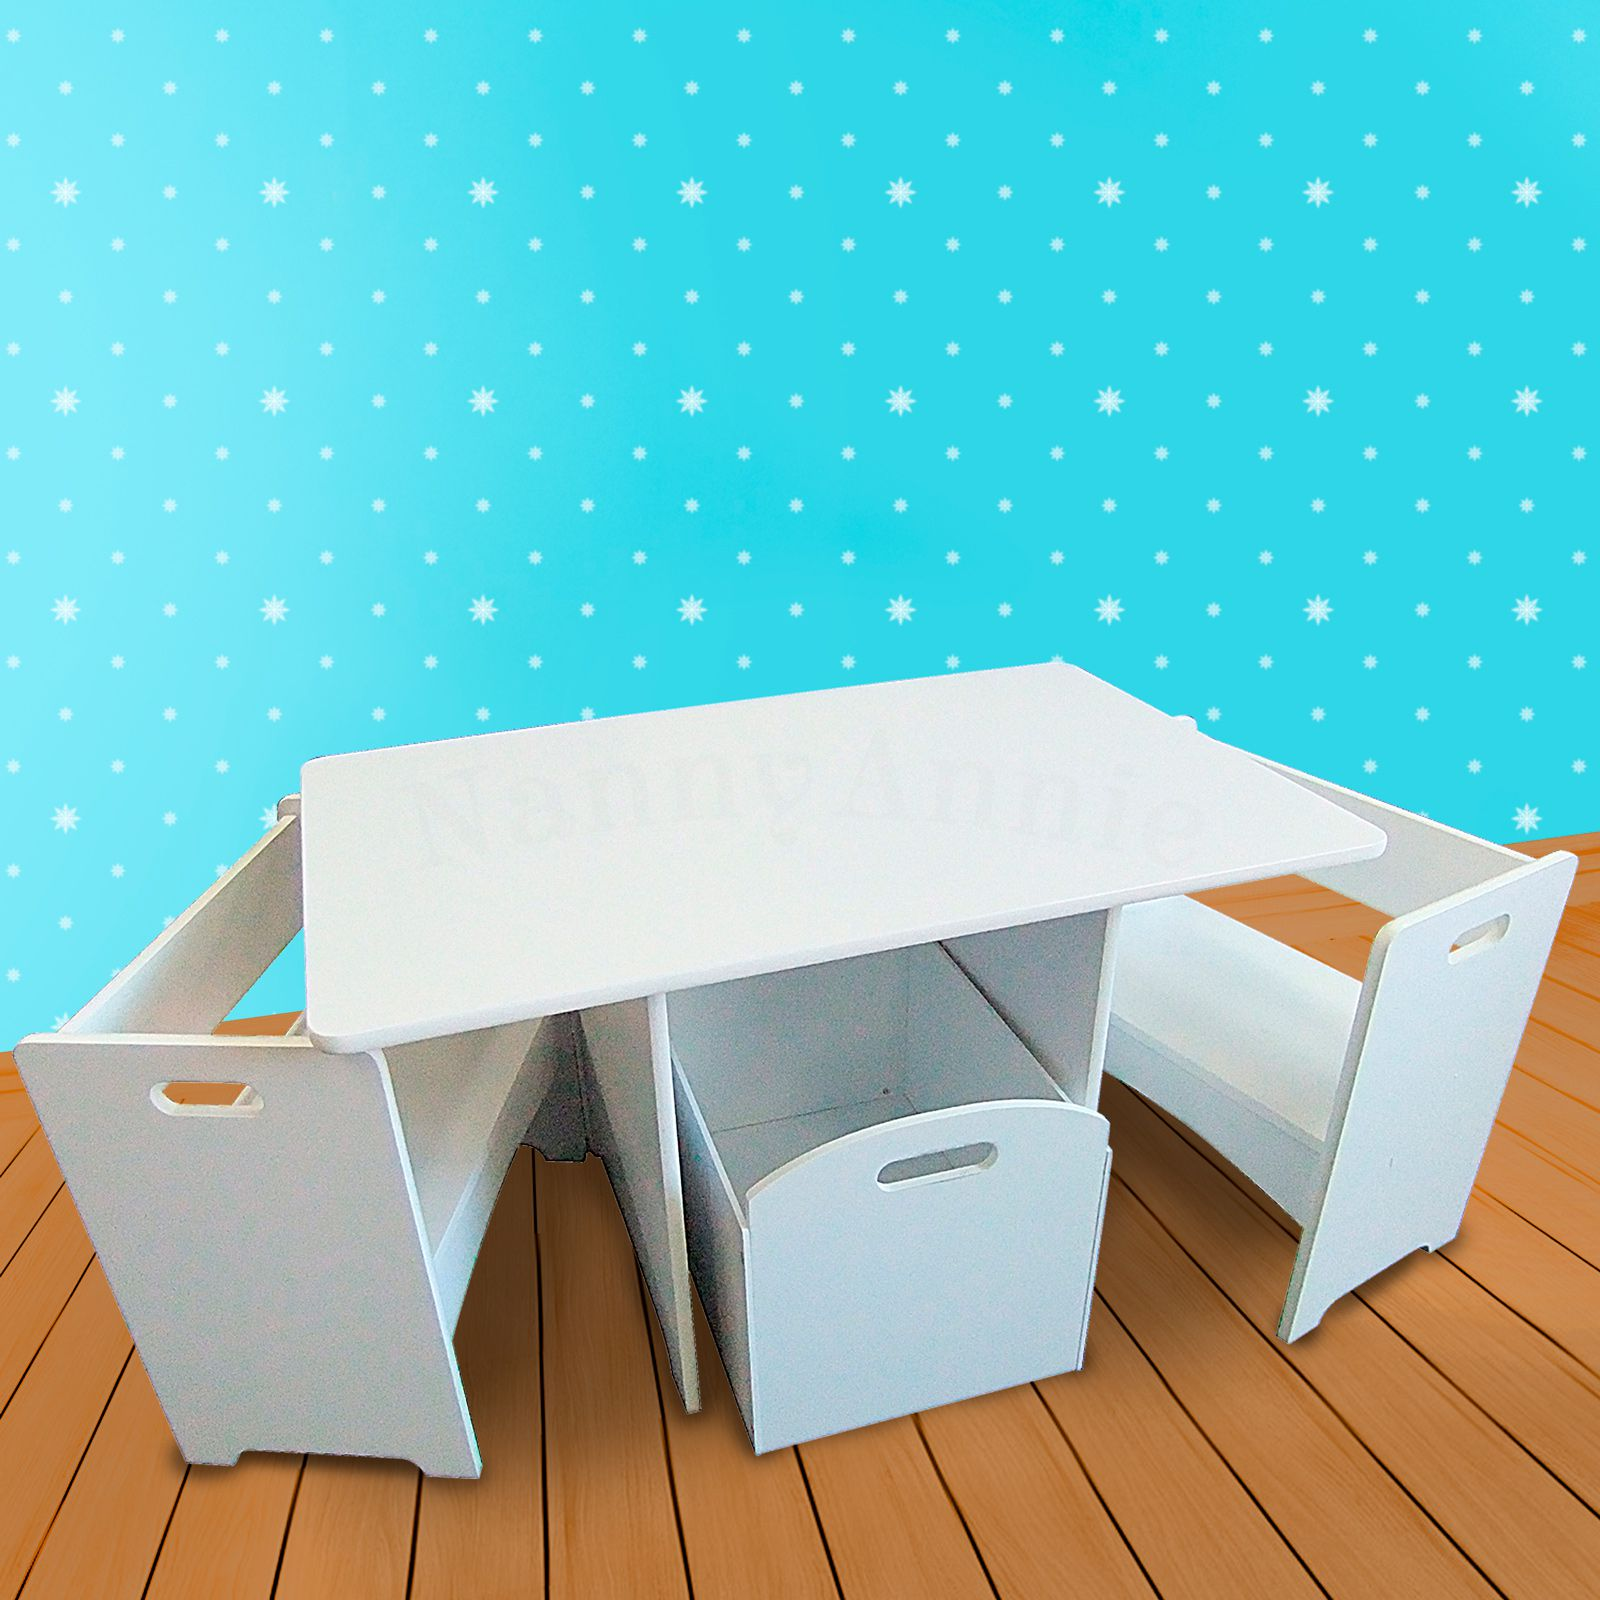 Childrens Table and Chairs Childrens Furniture Kids Table